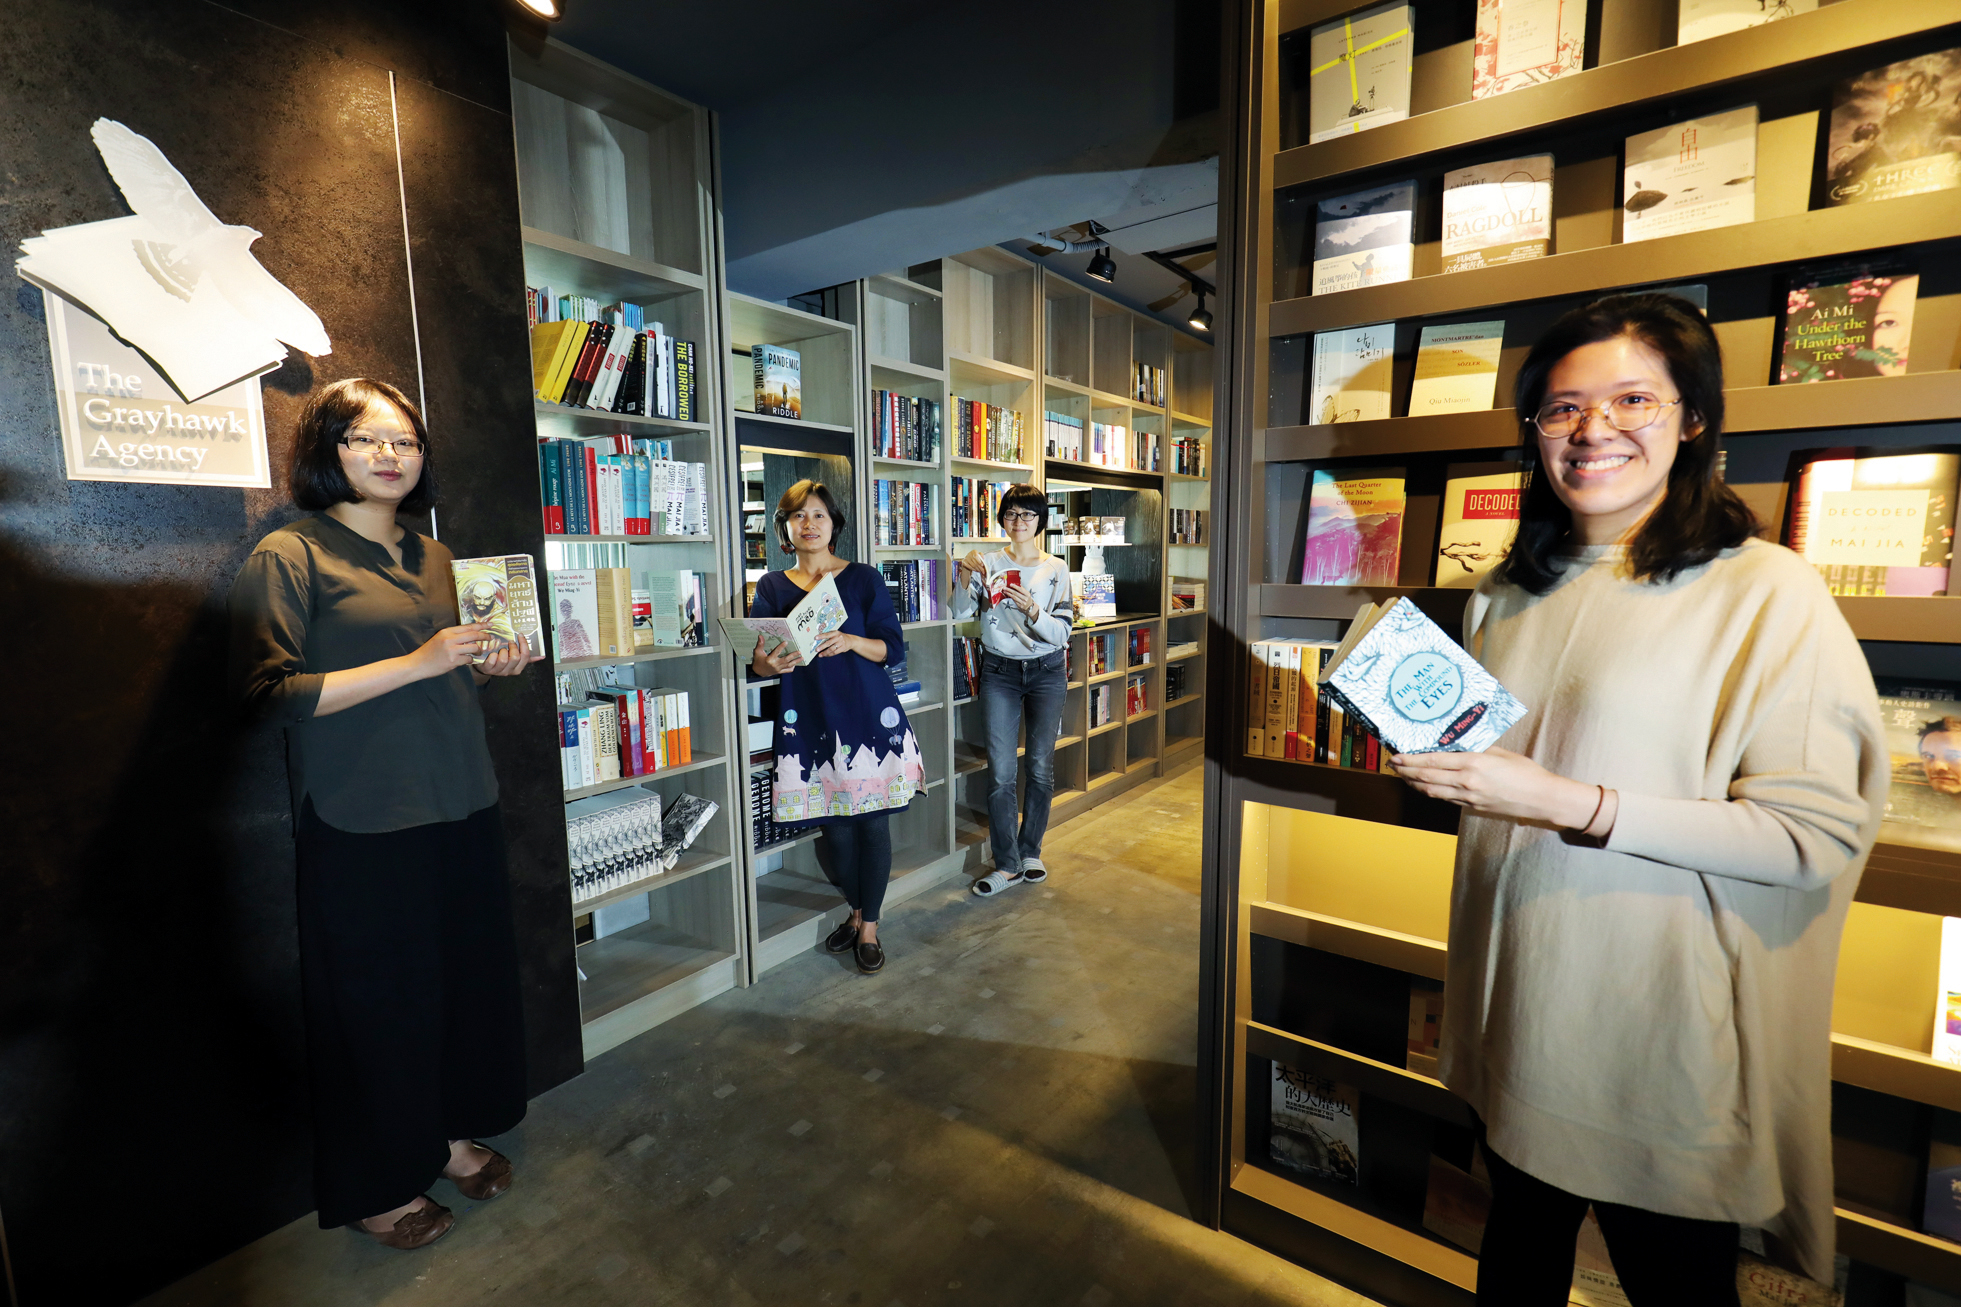 With Taiwan's publishing industry no longer able to look just at the domestic market, copyright brokers are becoming increasingly important to handle transnational deals. Shown here is the Grayhawk Agency. (photo by Jimmy Lin)